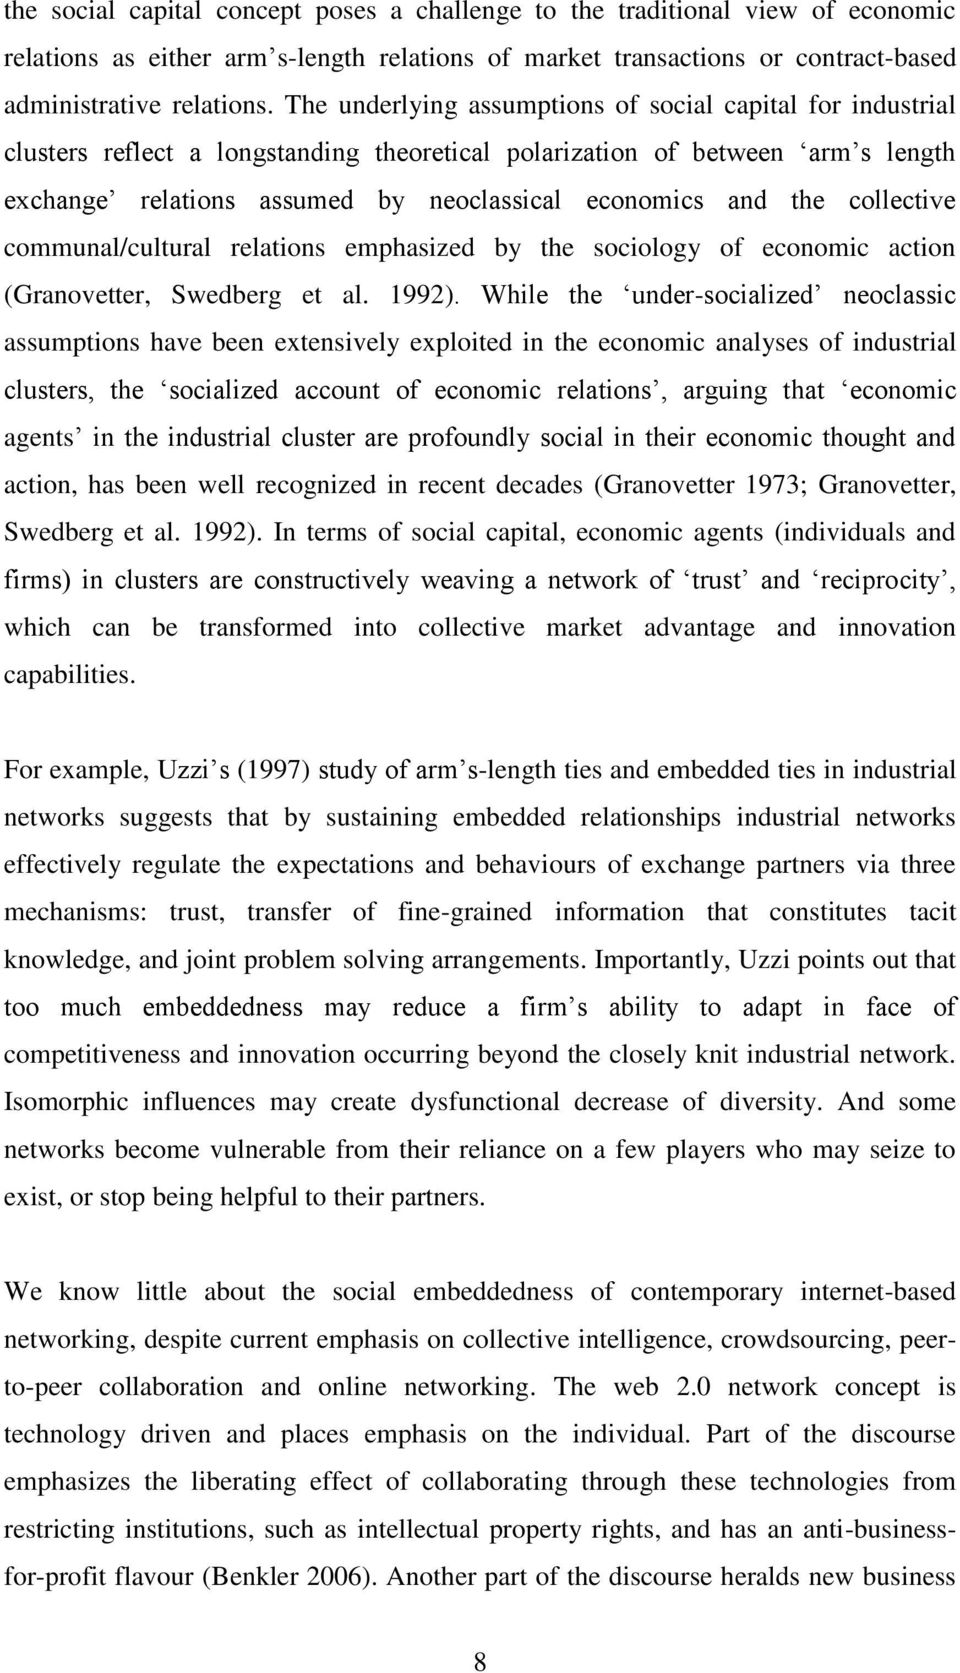 the collective communal/cultural relations emphasized by the sociology of economic action (Granovetter, Swedberg et al. 1992).